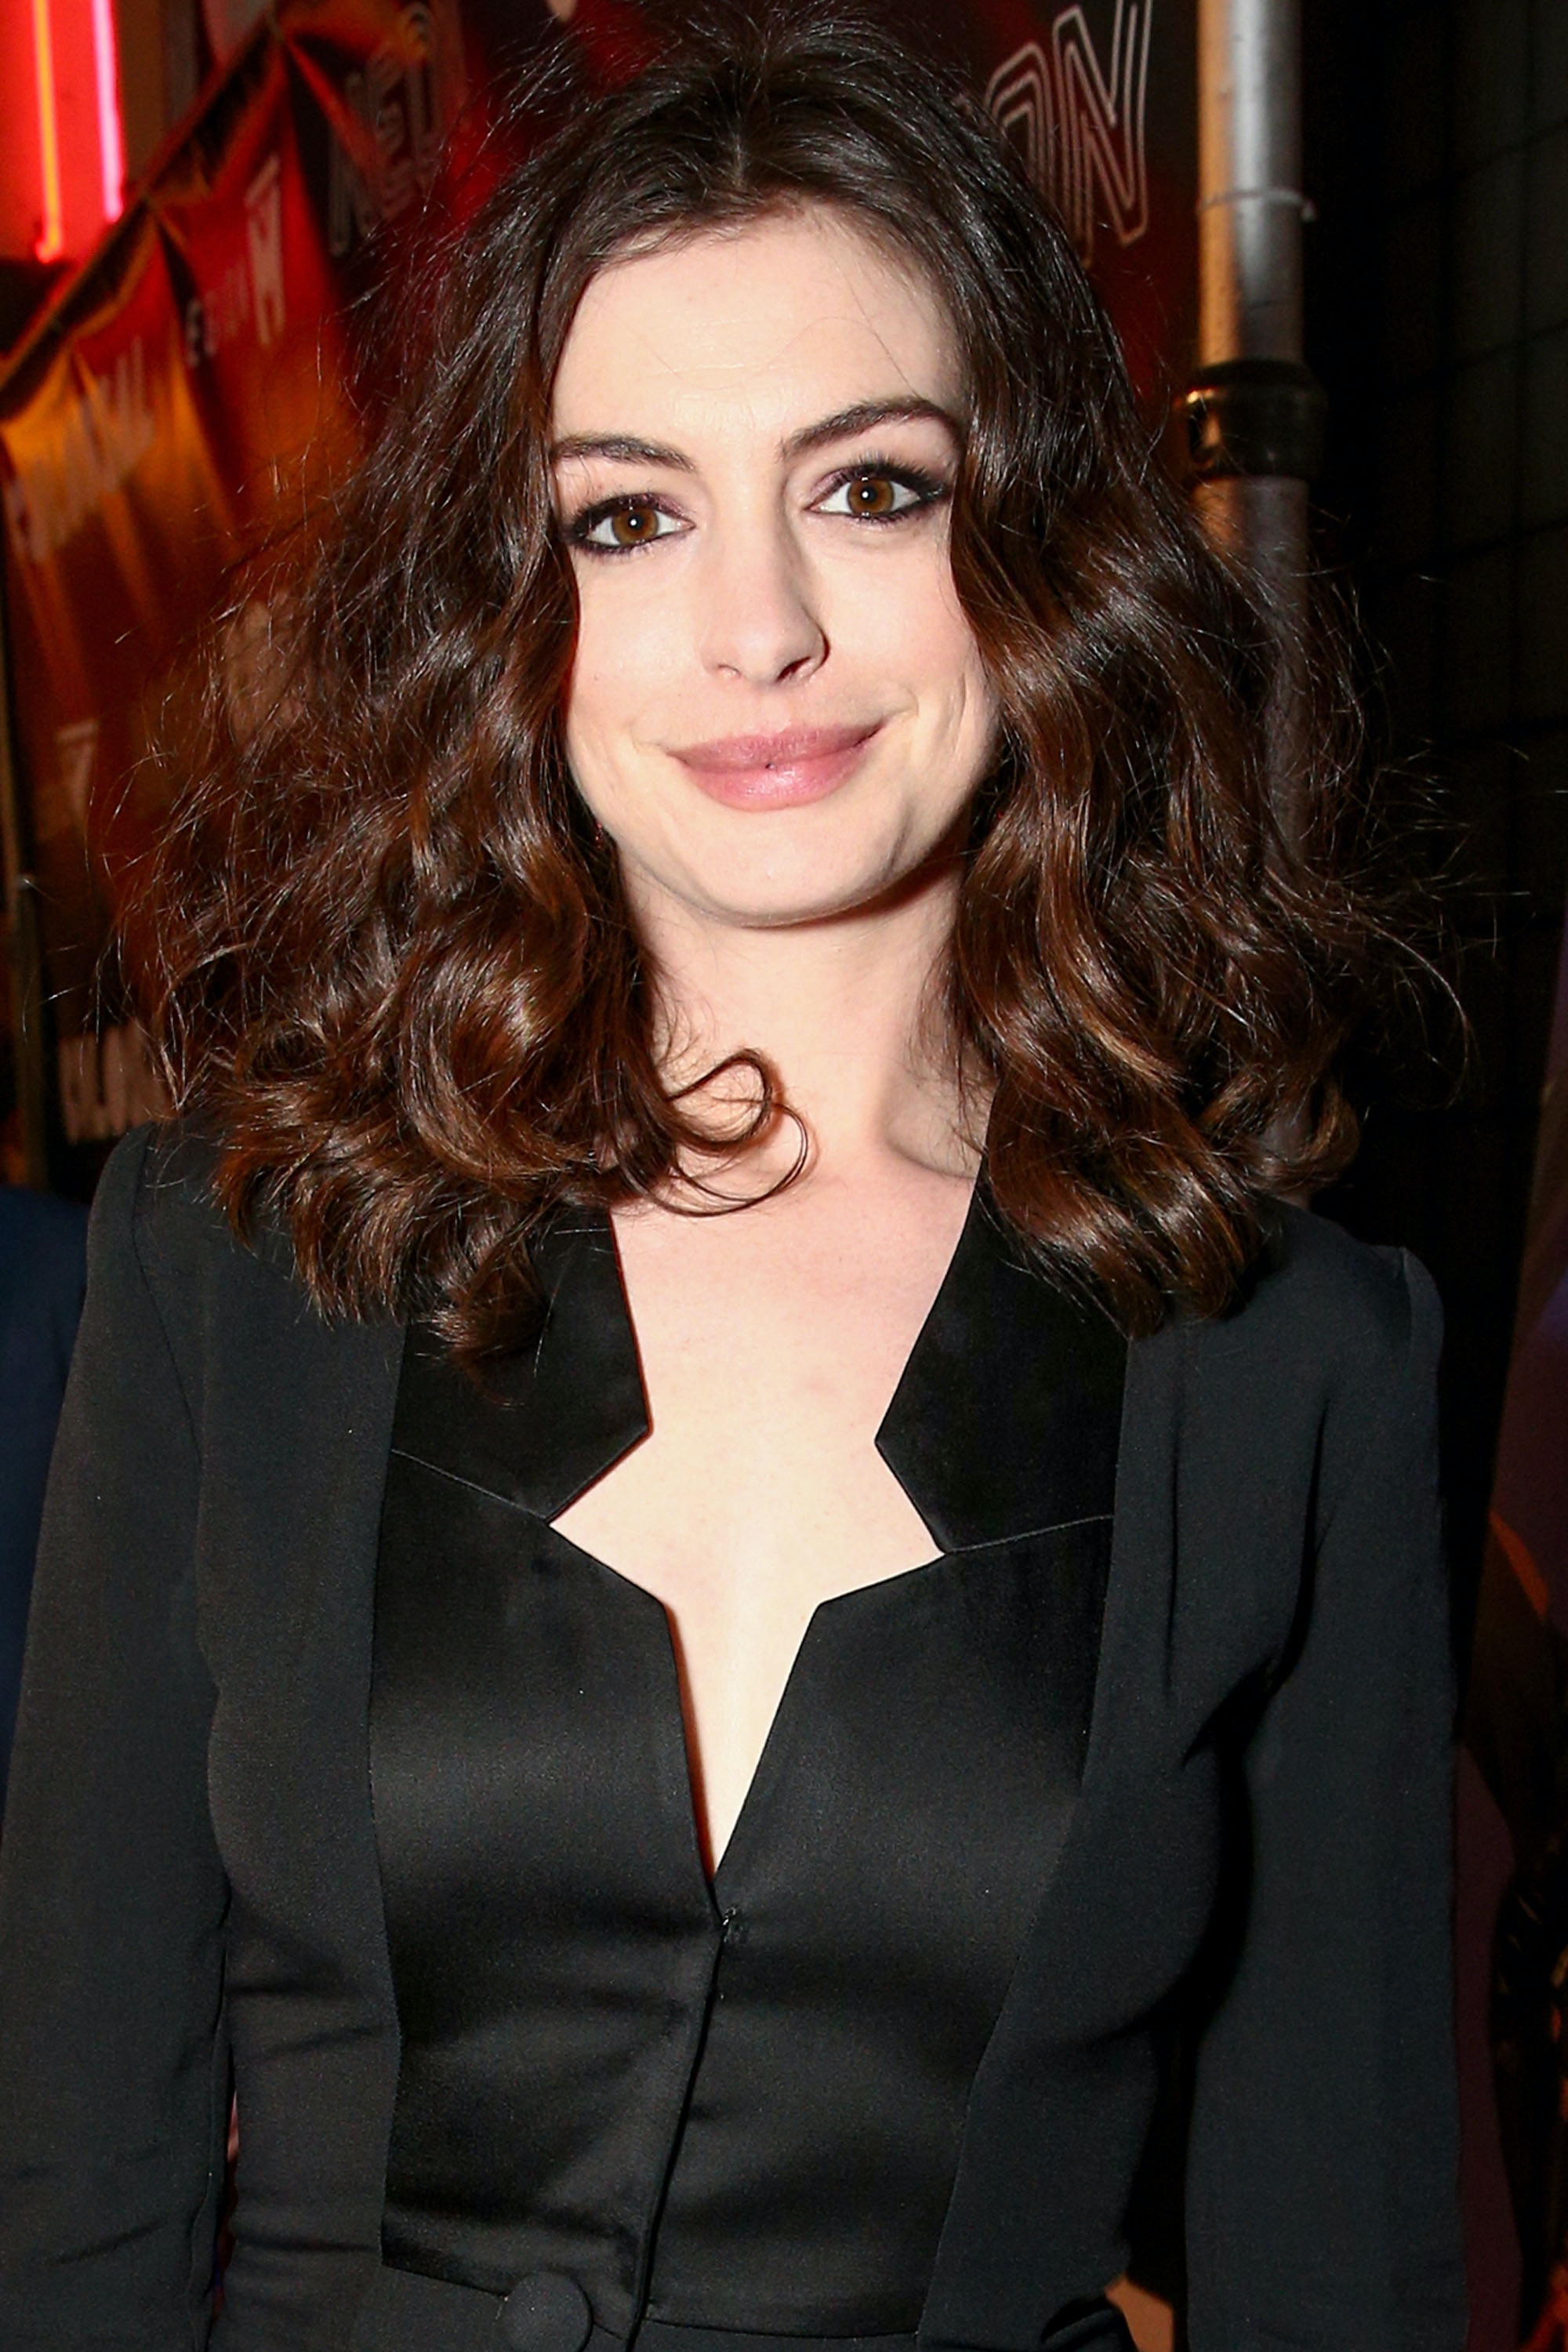 Hacked Anne Hathaway nudes (78 foto and video), Ass, Leaked, Feet, cleavage 2018